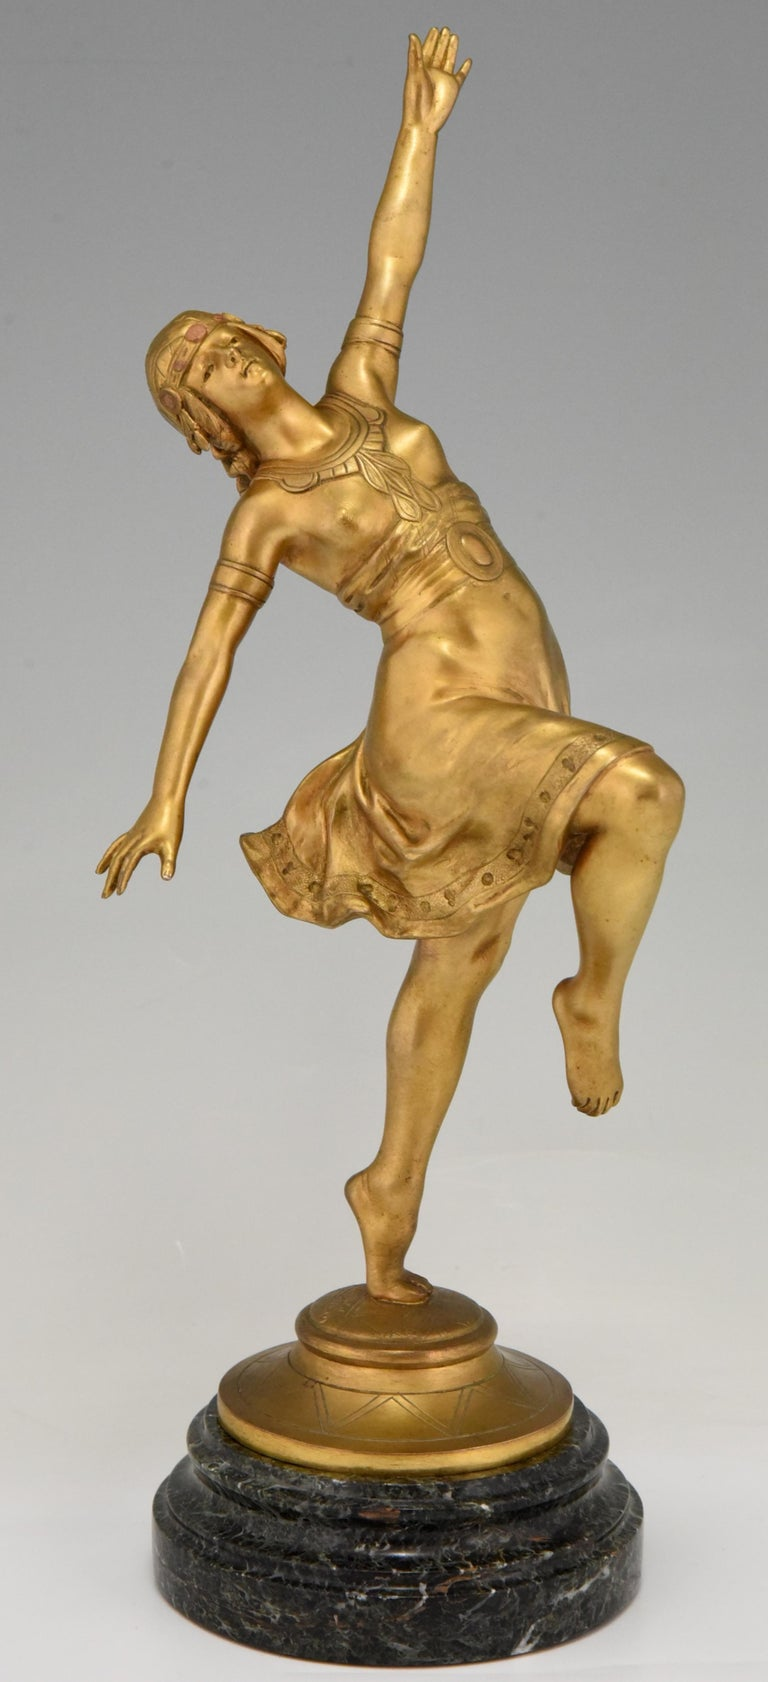 Art Nouveau bronze sculpture of an Oriental dancer.  By the sculptor Jean Garnier, born in France in 1853. With Founders signature of C. Villain.  The sculpture has a gilt patina and stands on a circular marble base.